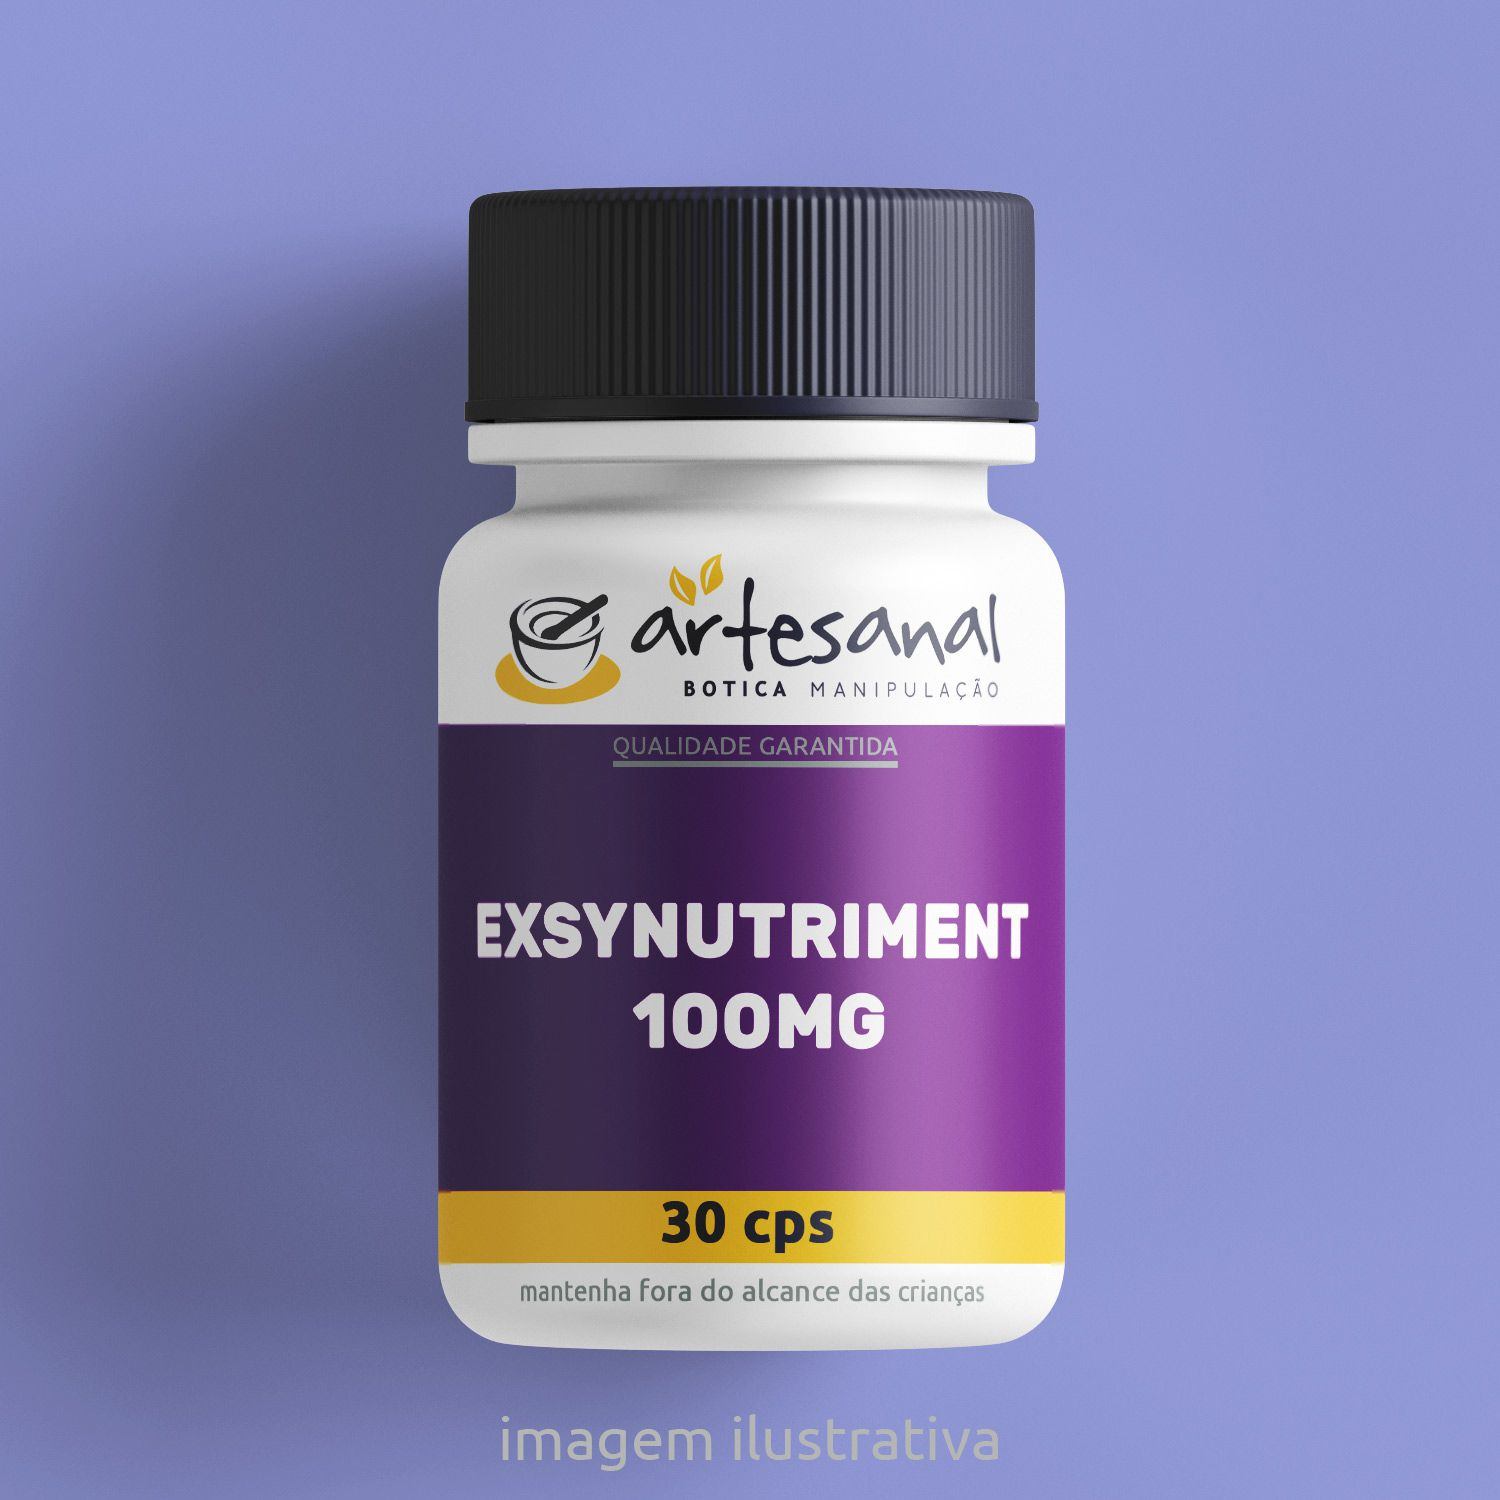 Exsynutriment 100mg - 30 Cps